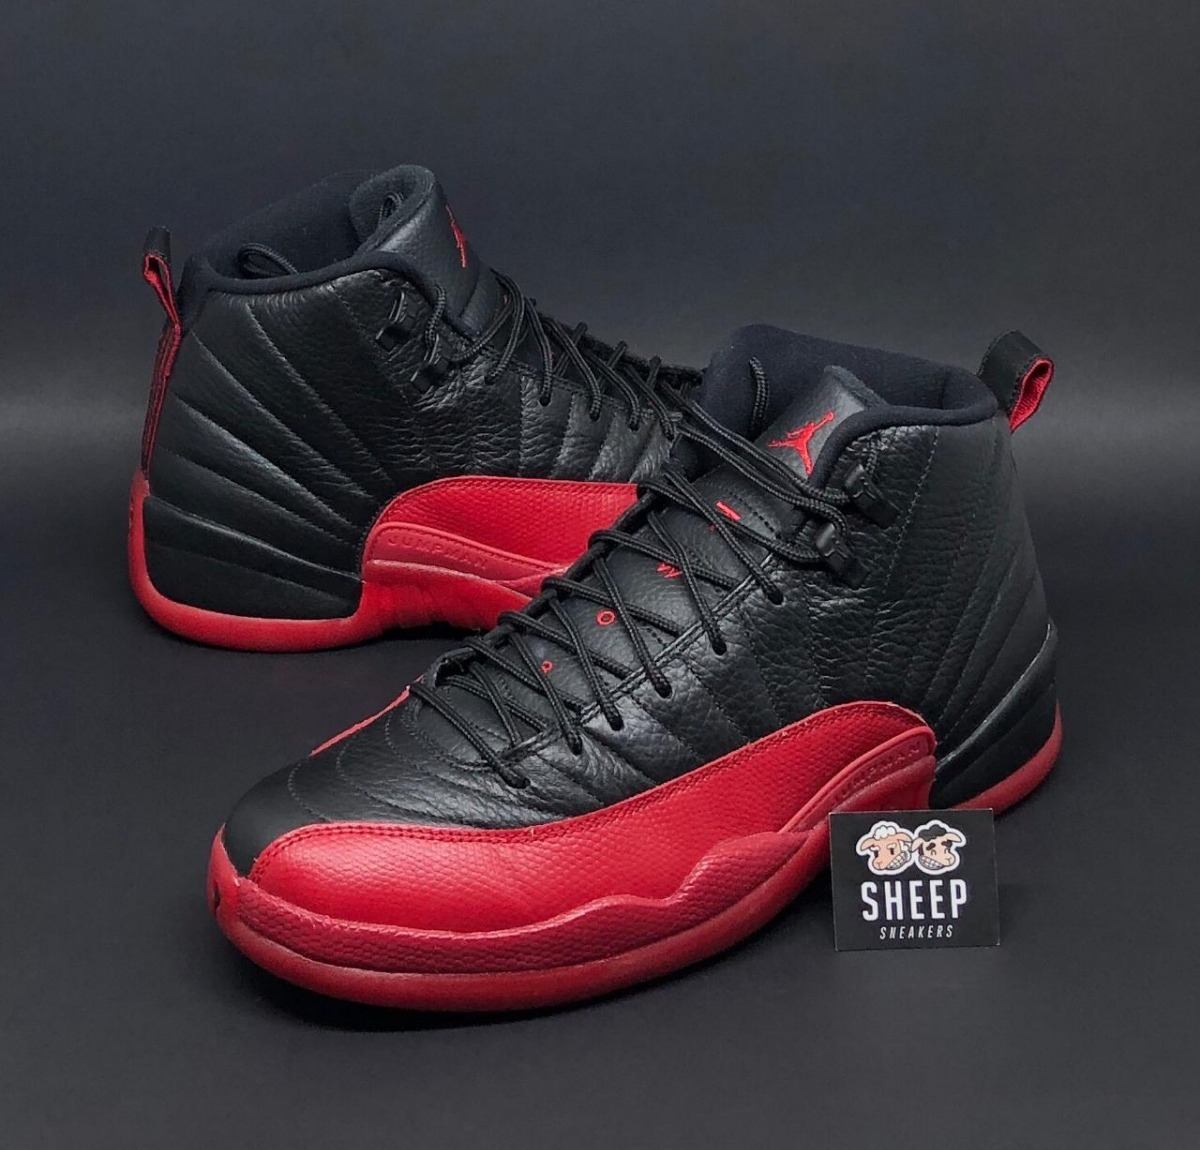 9236d37d621 tênis nike air jordan 12 retro flu game. Carregando zoom.